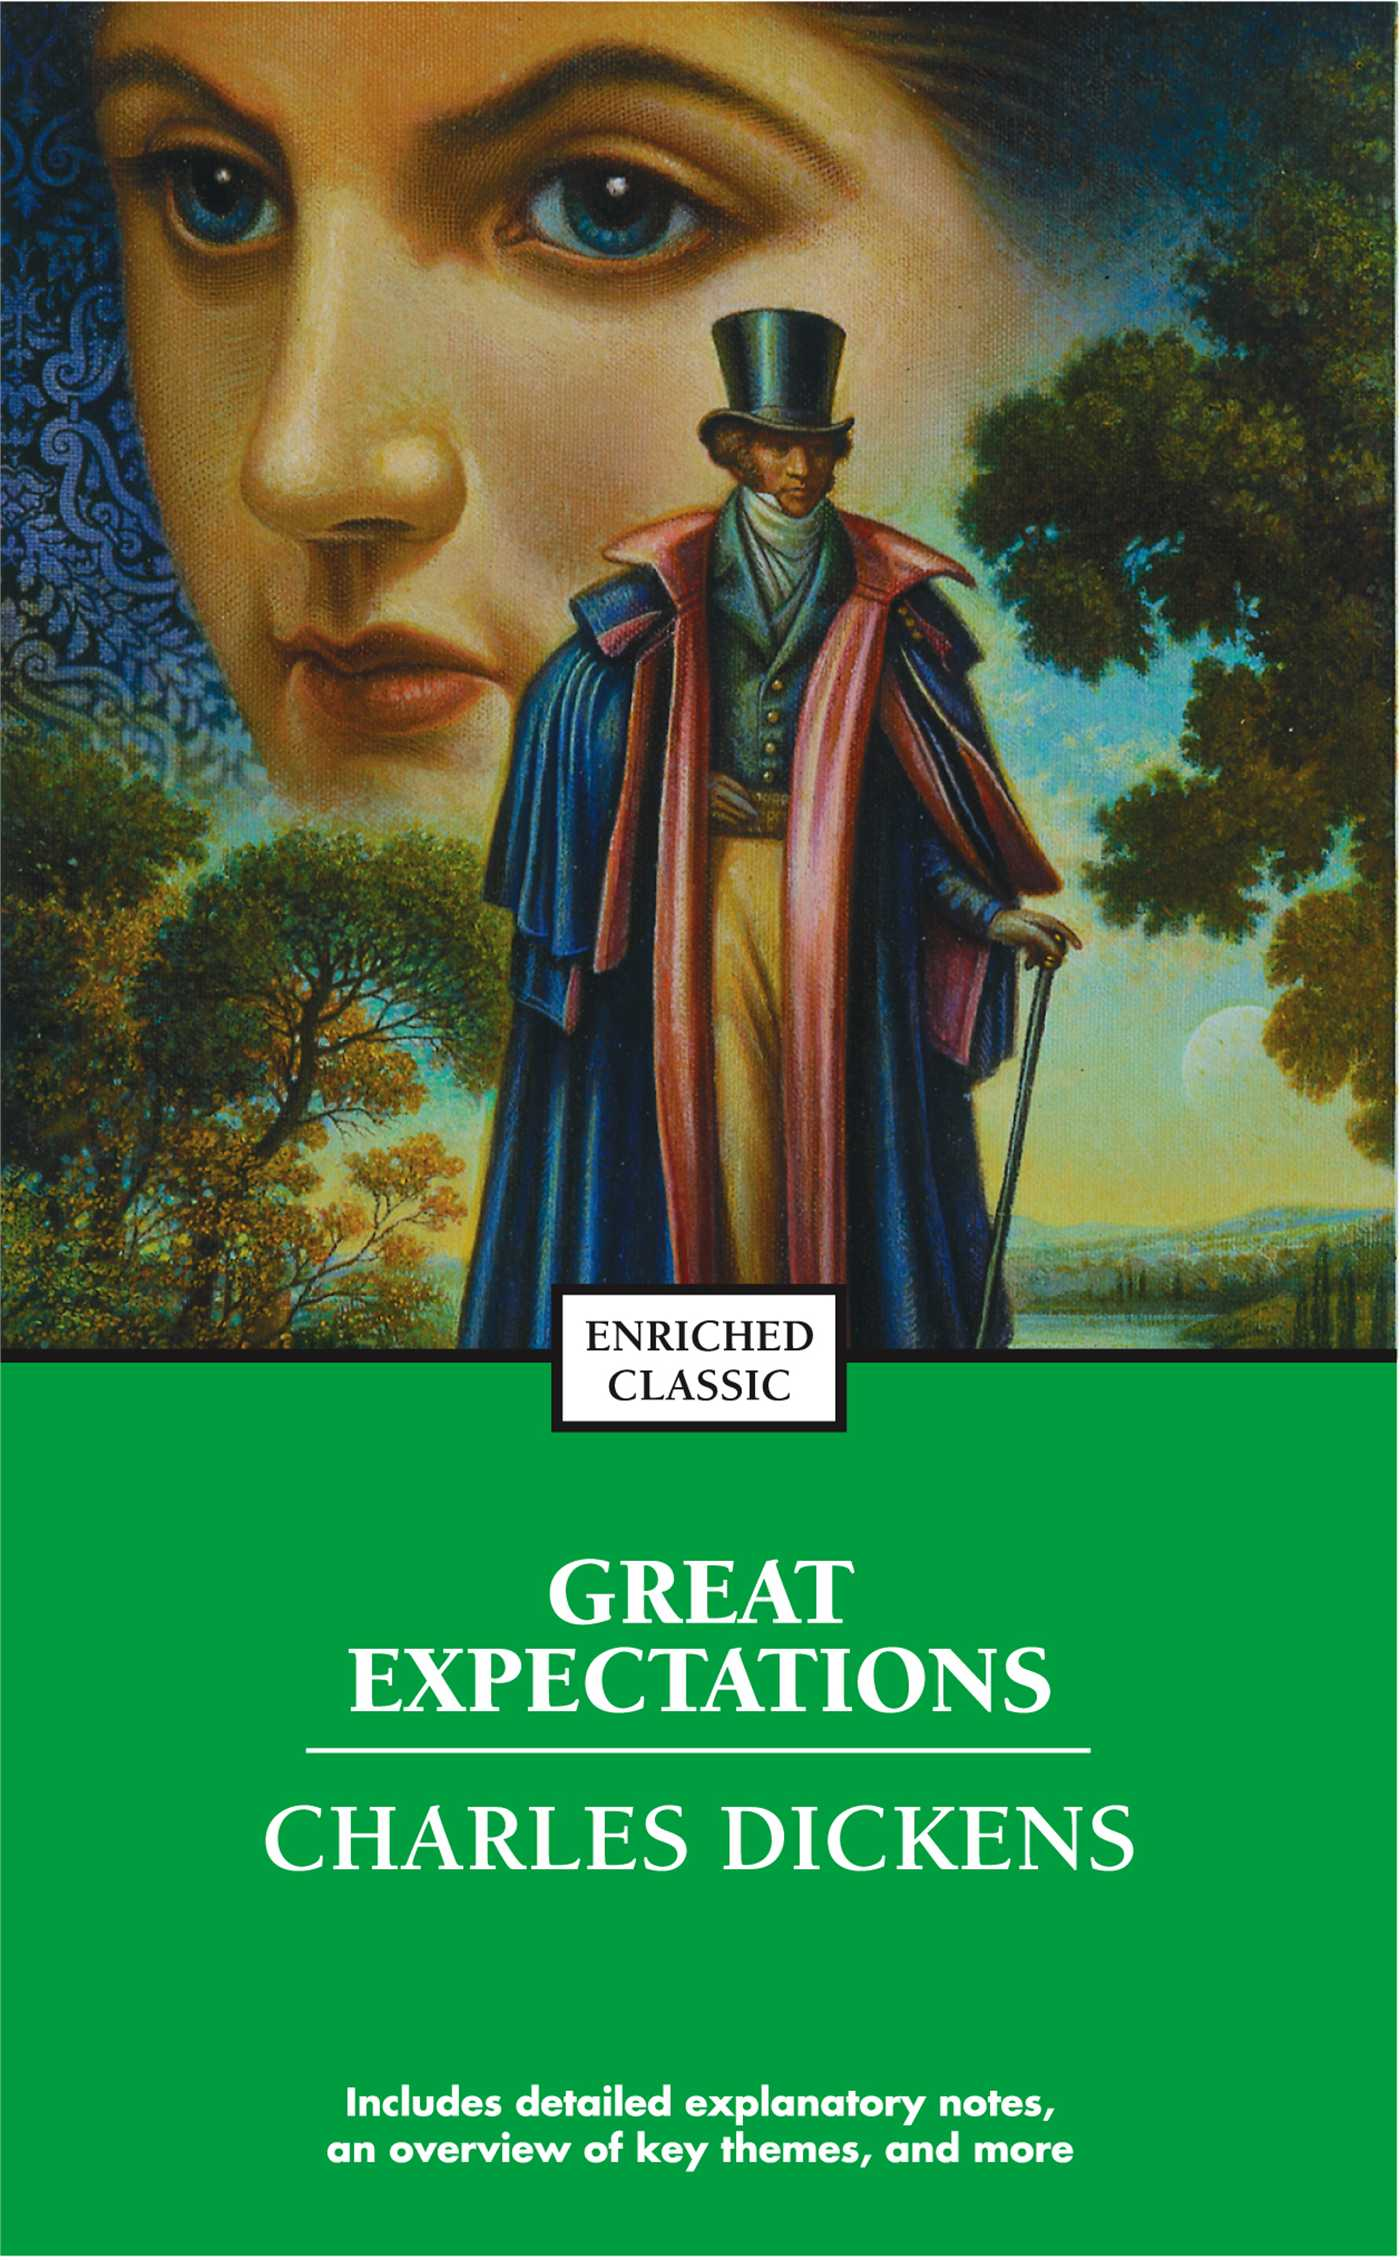 a review of great expectations movie in contrast to the book by charles dickens